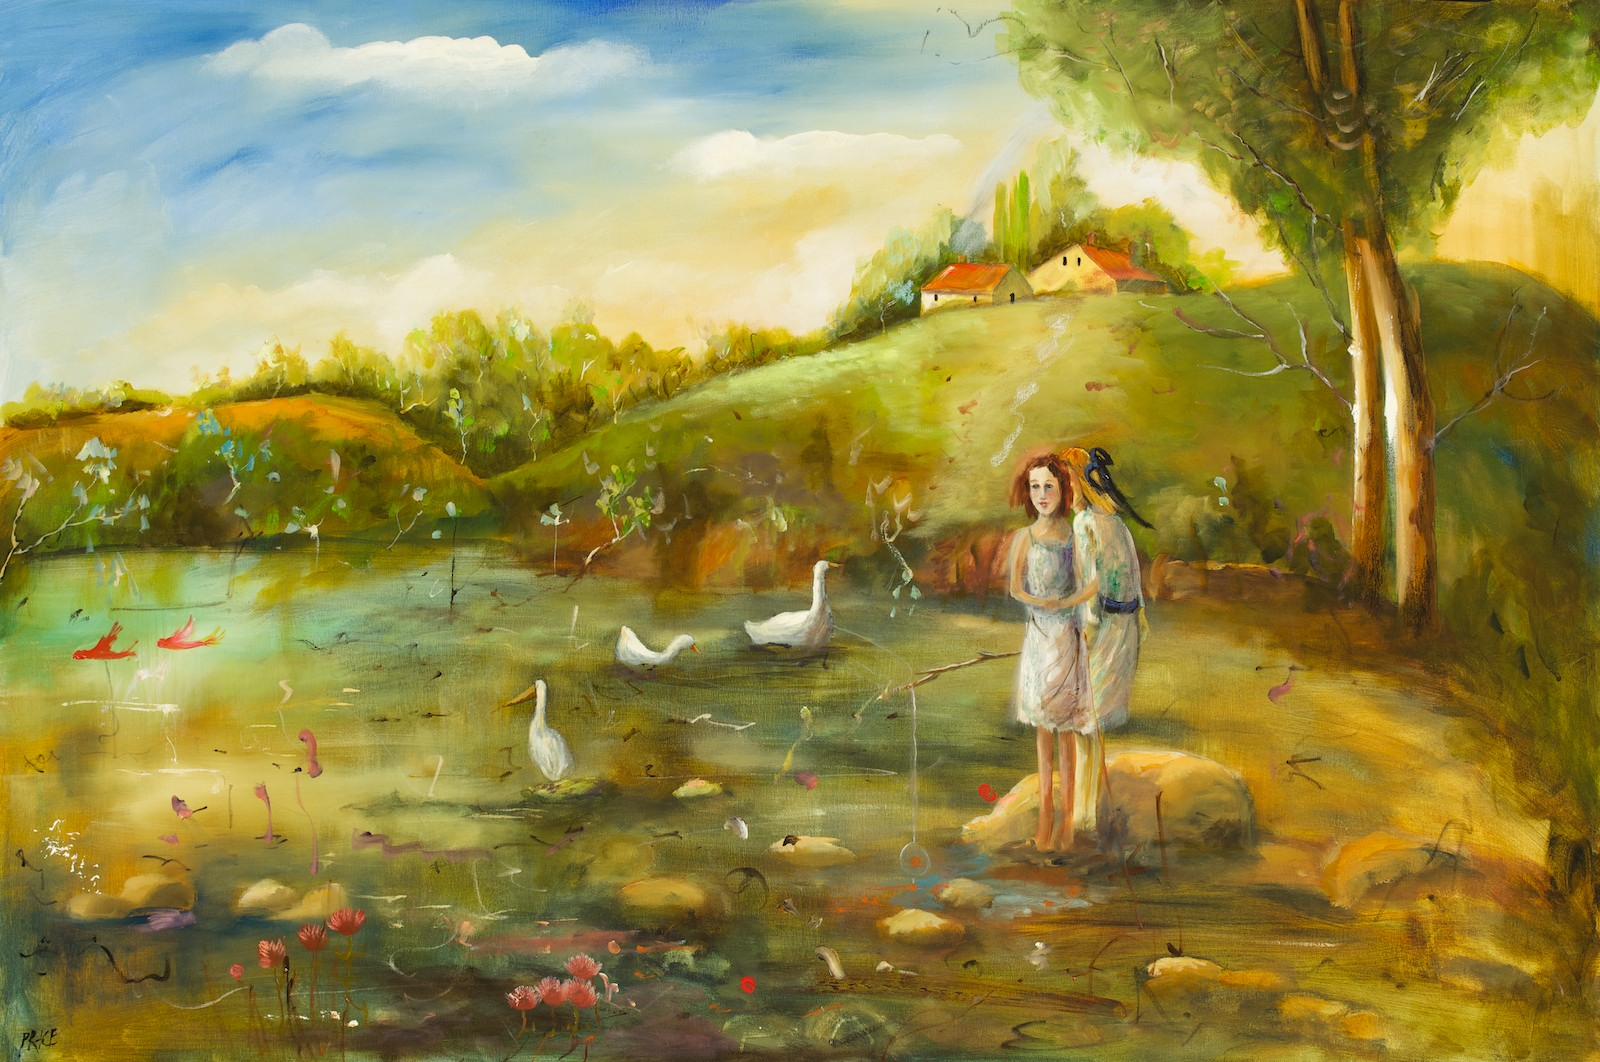 #12033 Terry Pauline Price 'A moment before school' 101cm x 152cm $8800